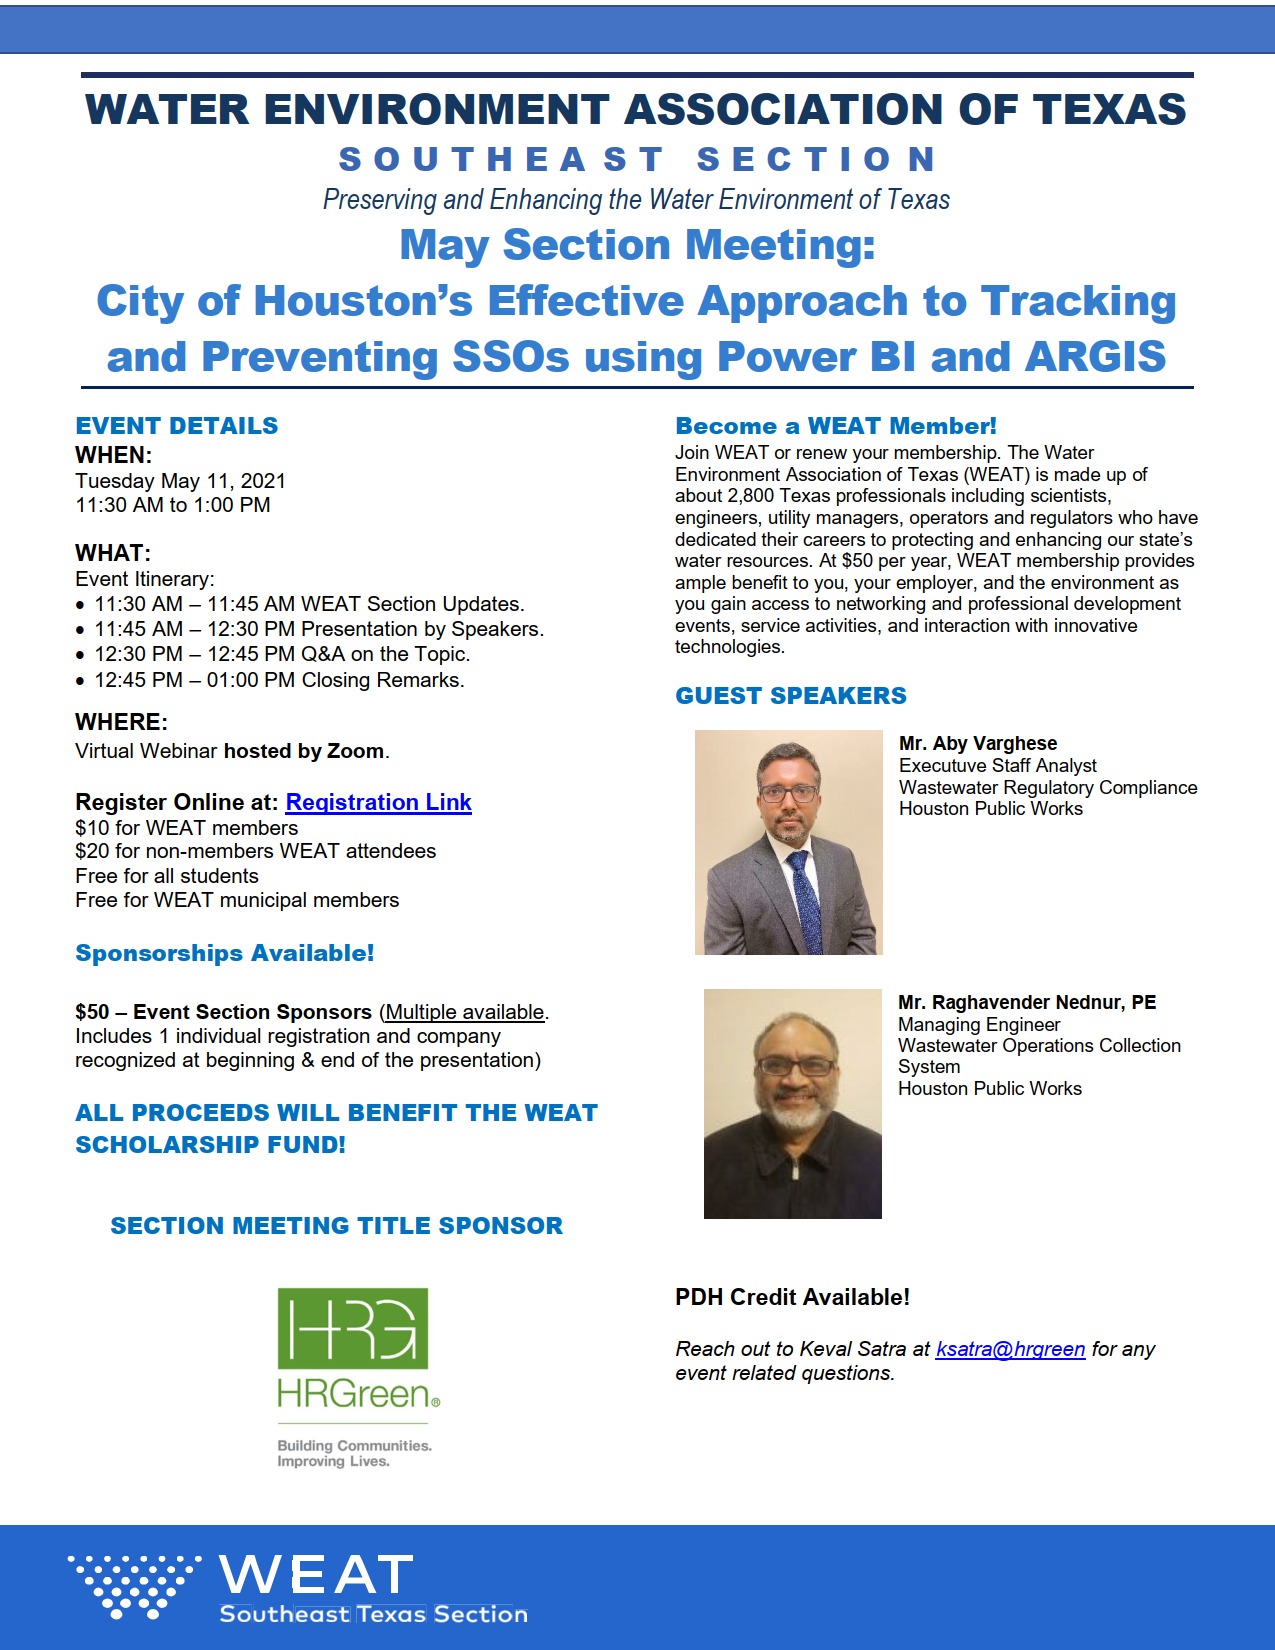 WEAT 2021 – May Section Meeting